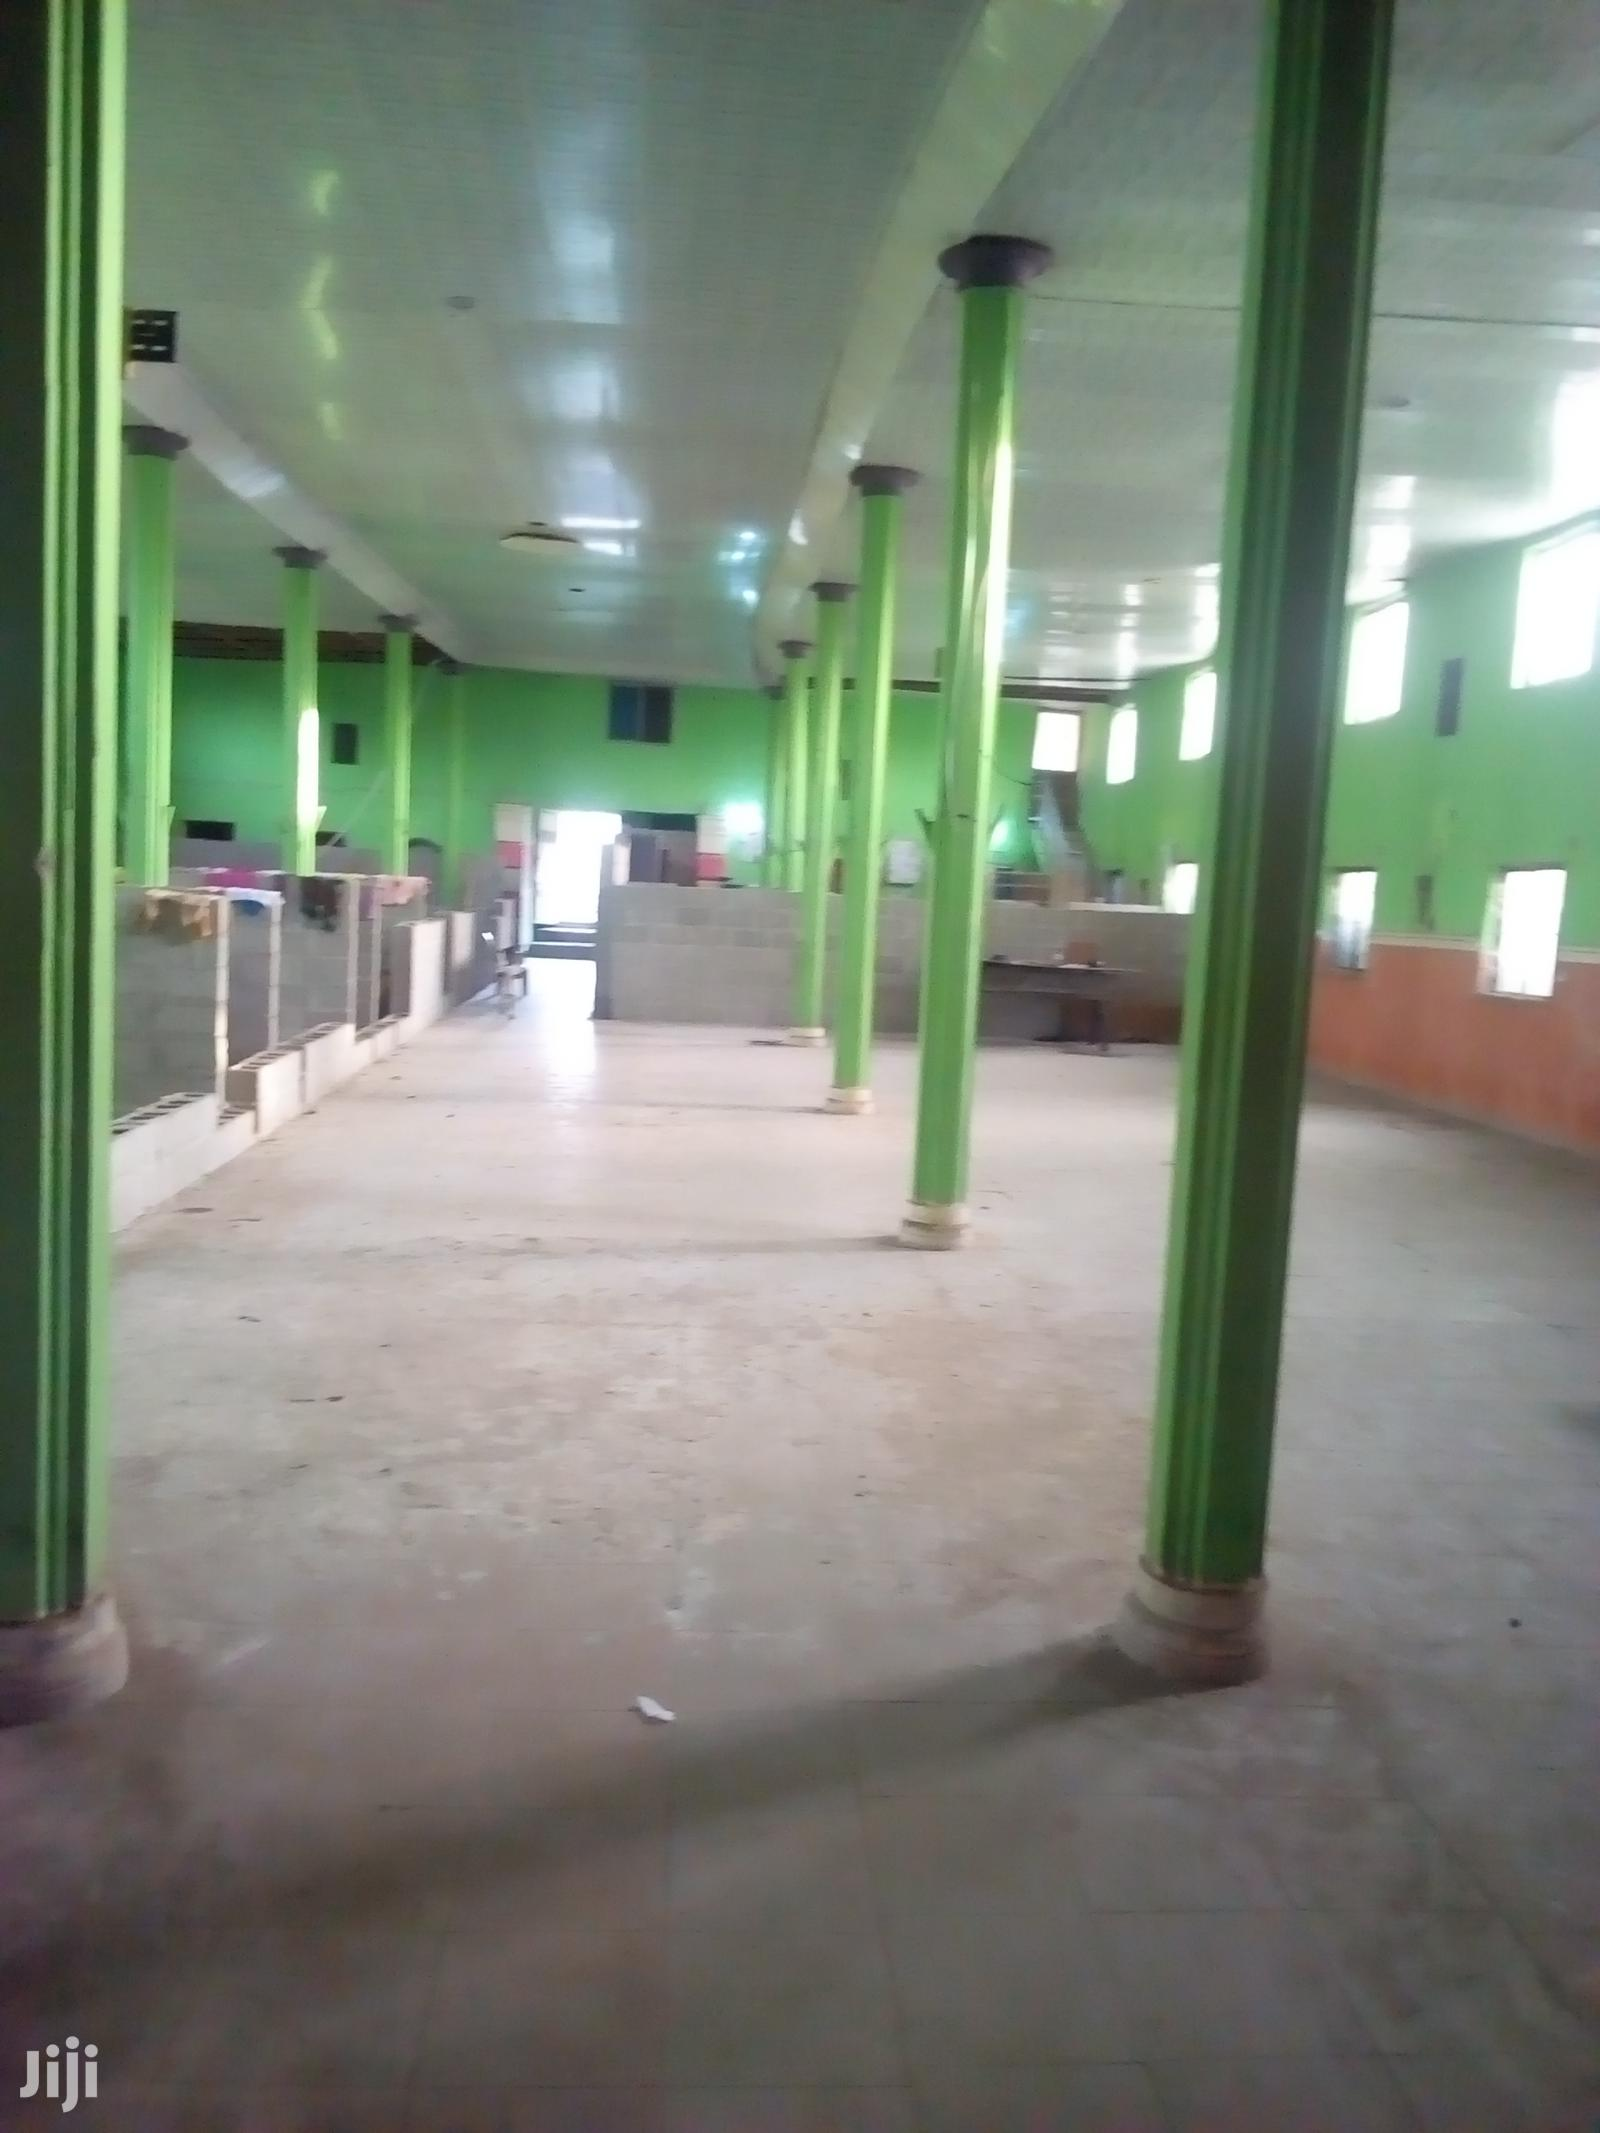 Big Auditorium/Hall For Church Use At Afromedia Okokomaiko | Commercial Property For Sale for sale in Ojo, Lagos State, Nigeria